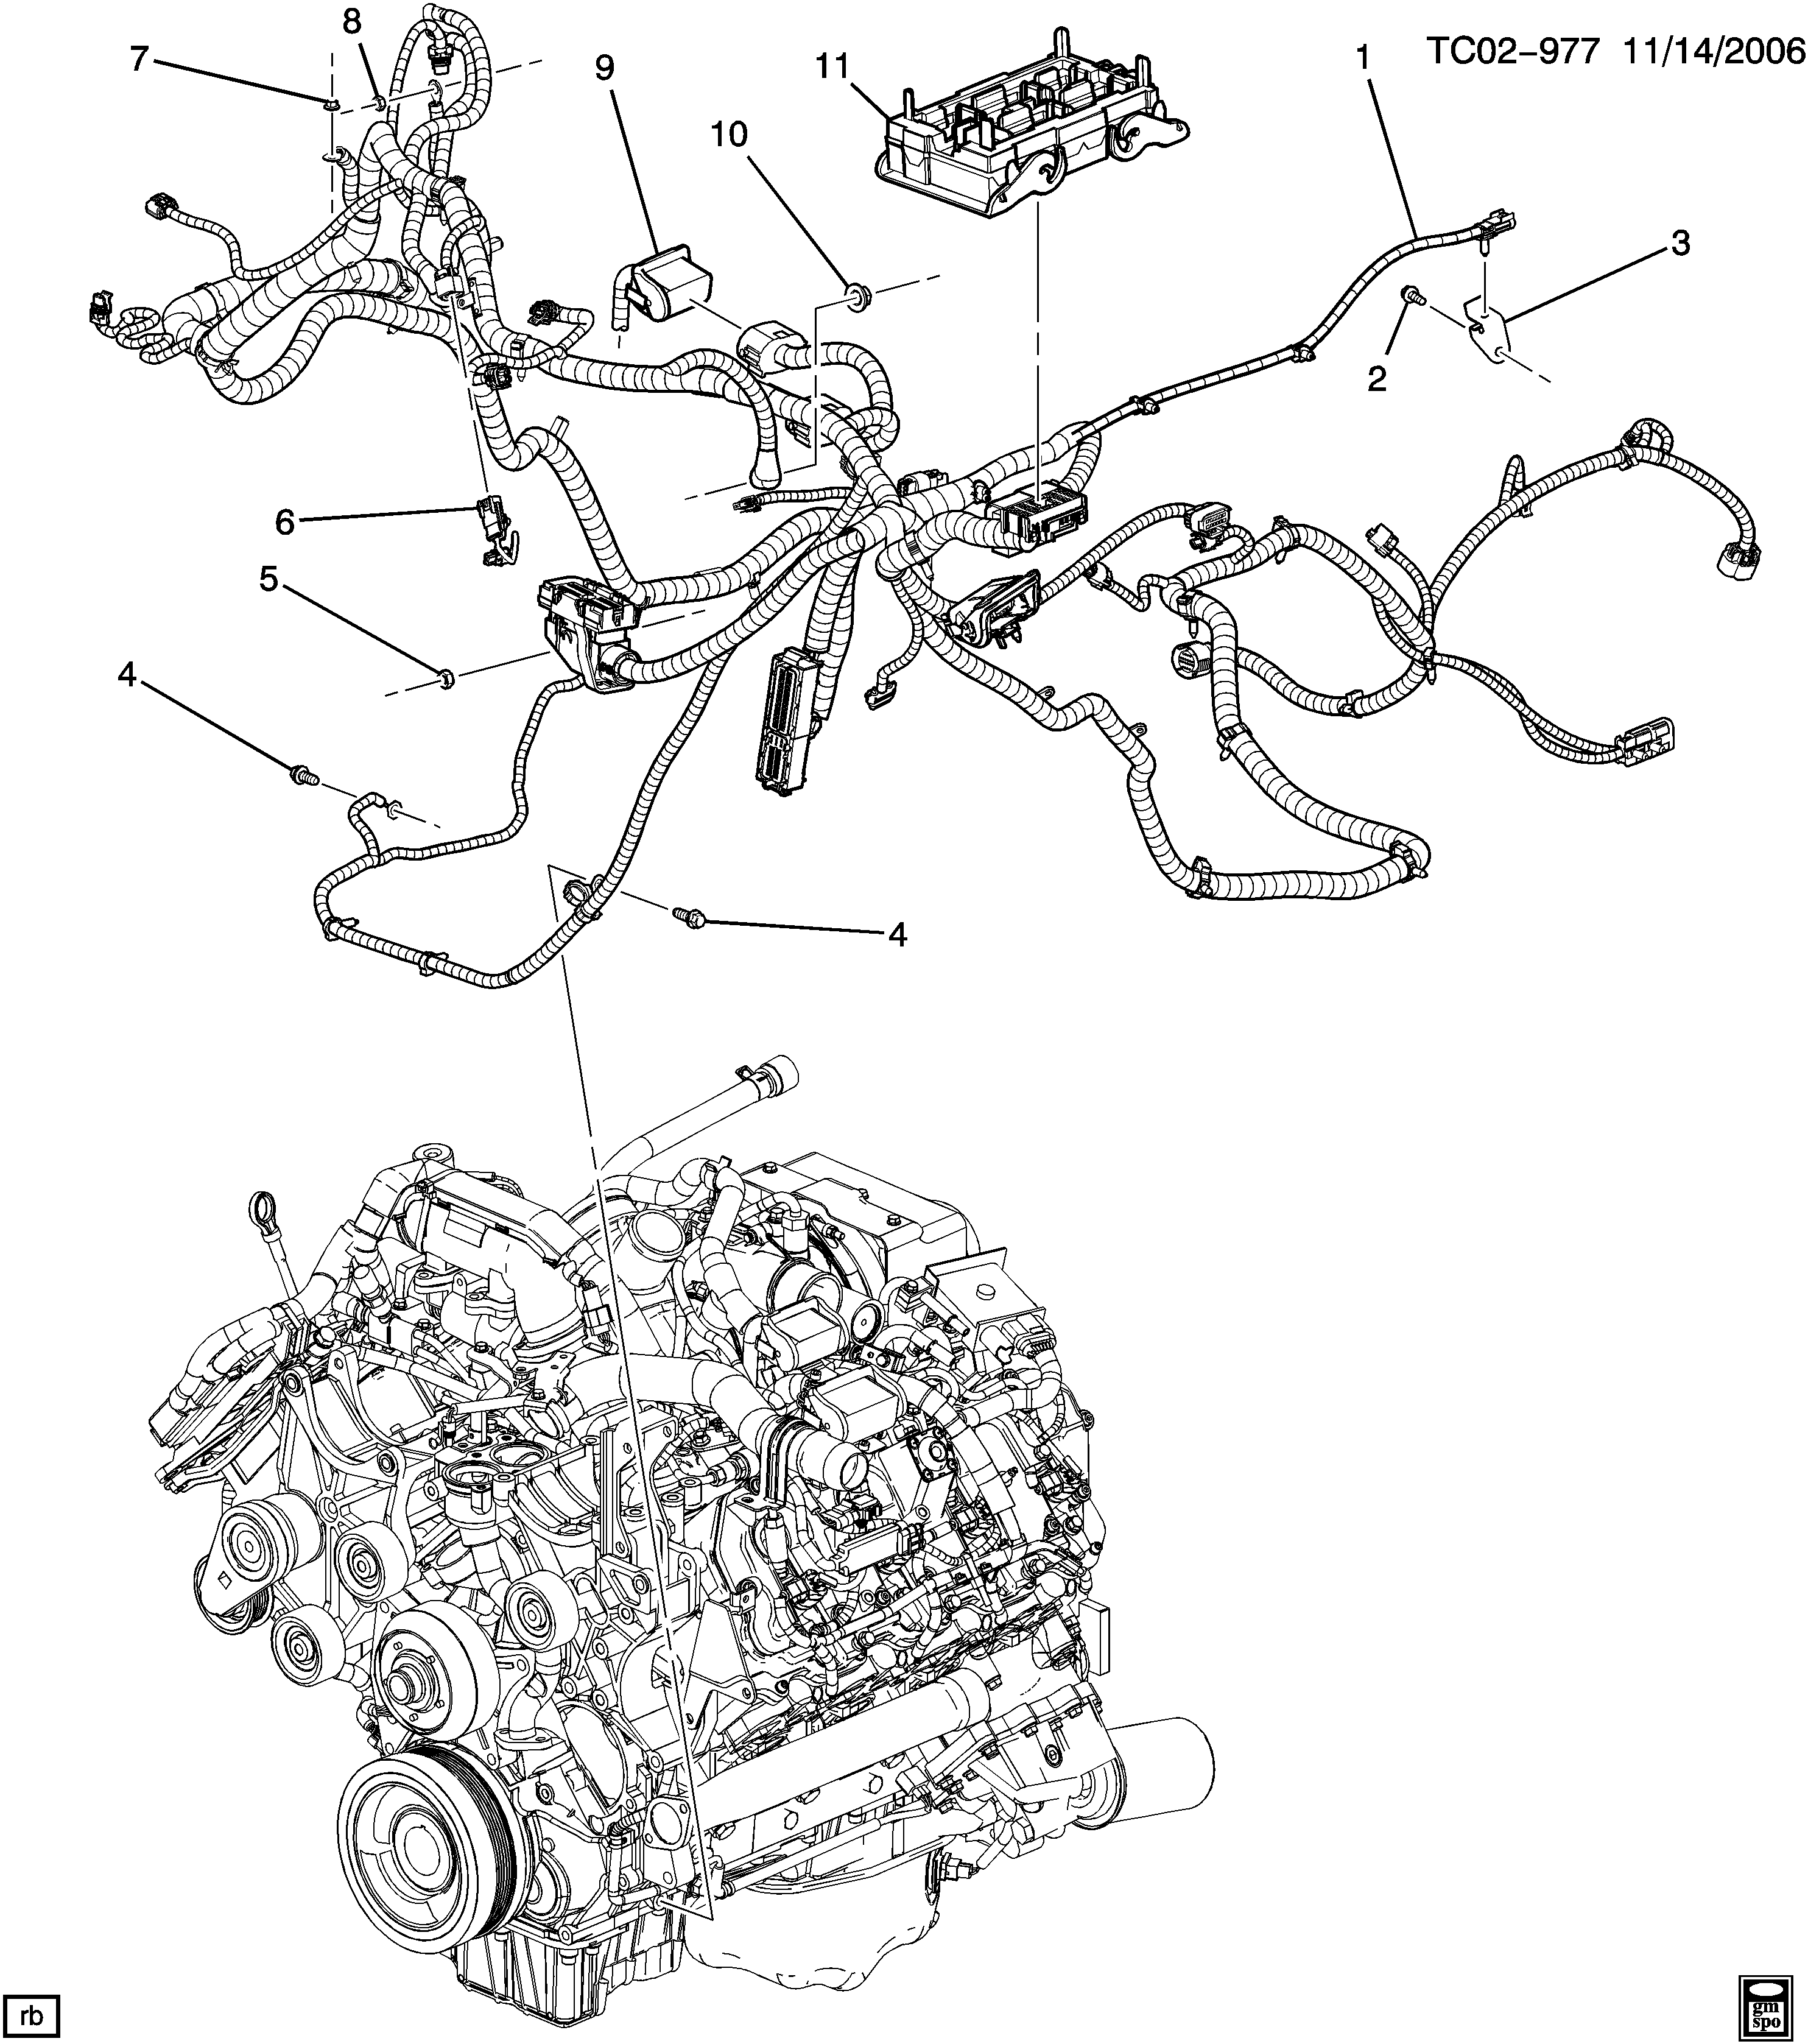 2006 chevy duramax glow plug diagram